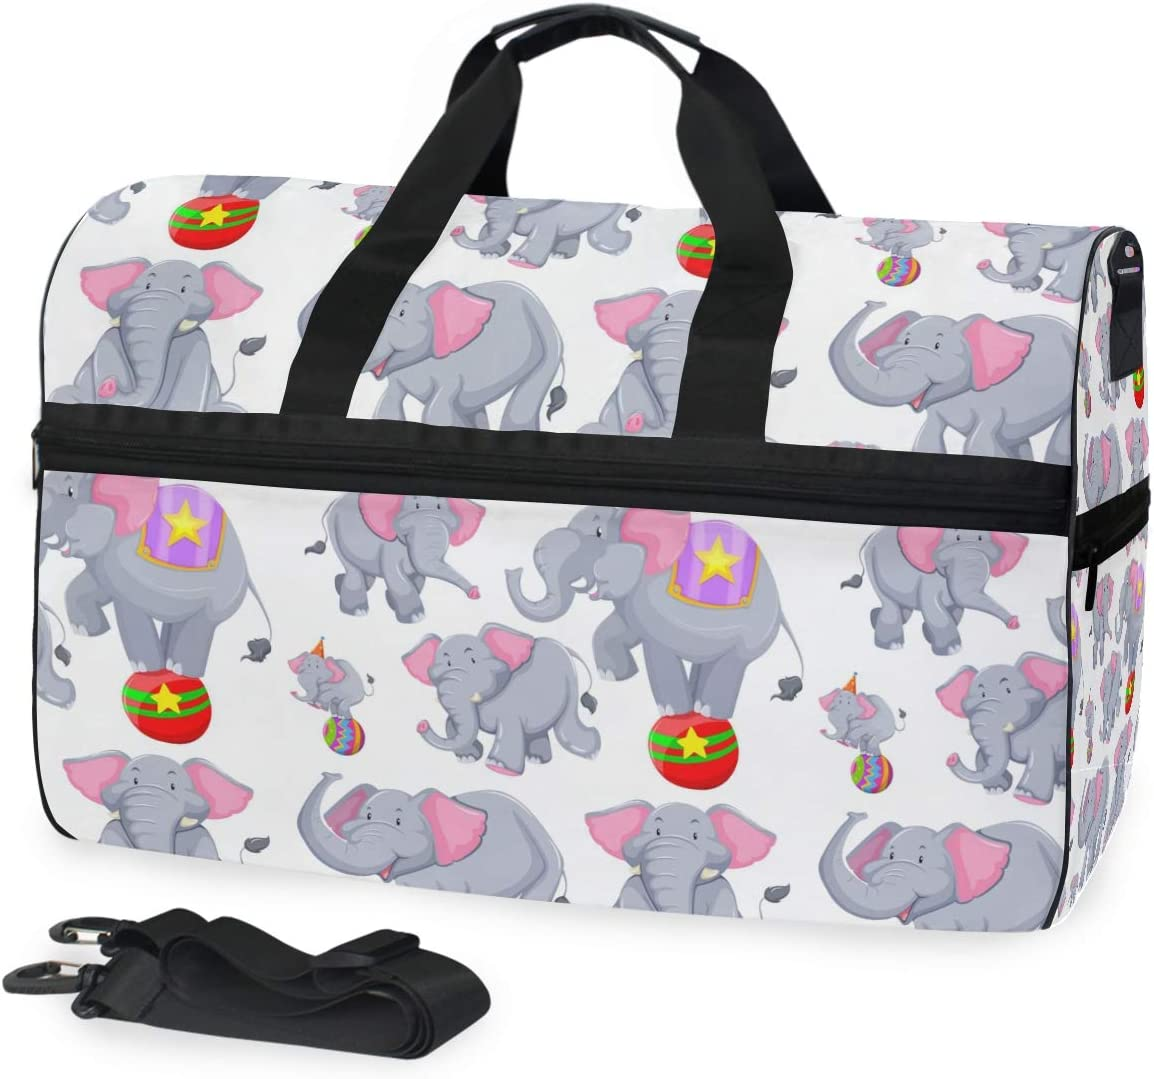 Travel Duffels Circus Elephant Duffle Bag Luggage Sports Gym for Women /& Men